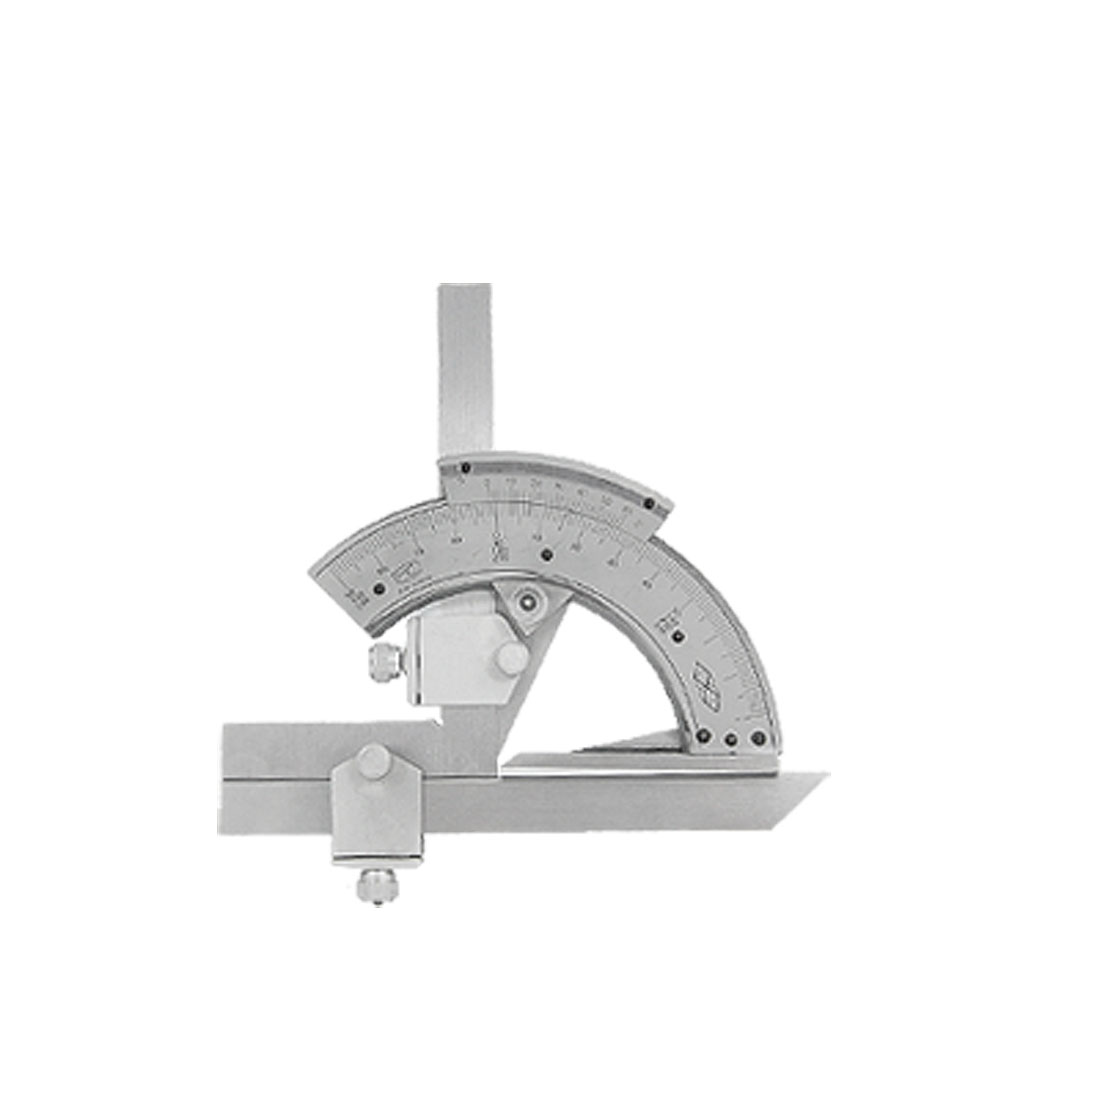 0-320 Degree Stainless Steel Universal Vernier Bevel Protractor